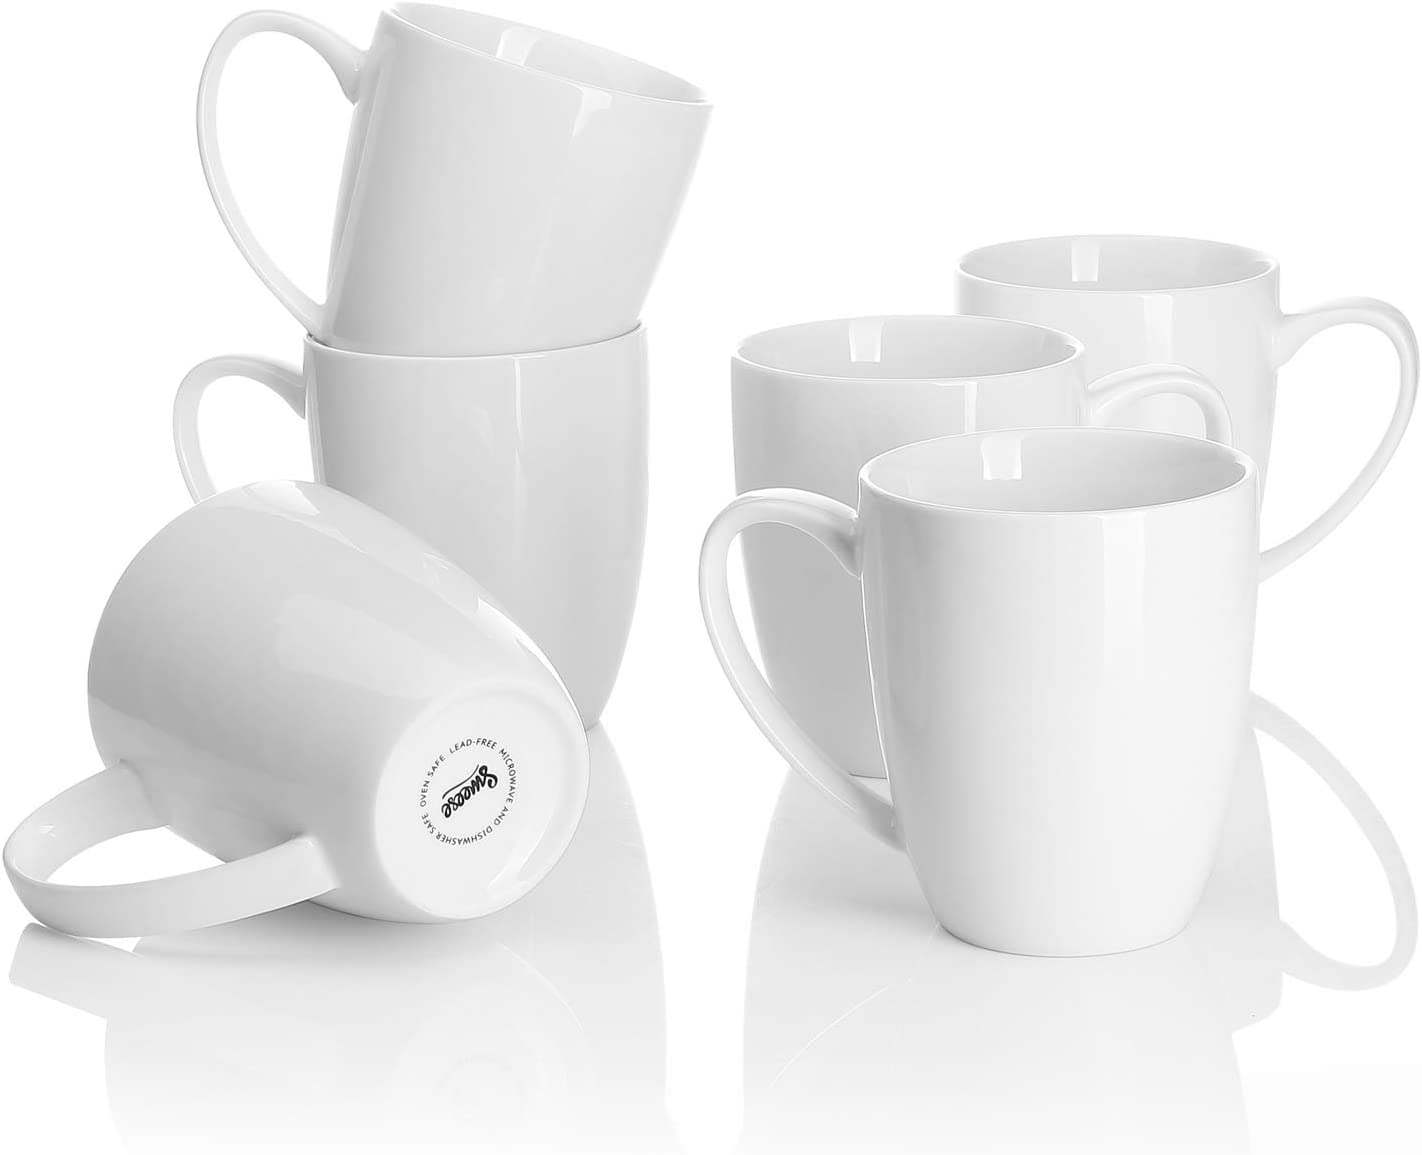 Sweese 611.001 Porcelain Mugs - 12 Ounce for Coffee, Tea, Mocha and Mulled Drinks - Set of 6, White